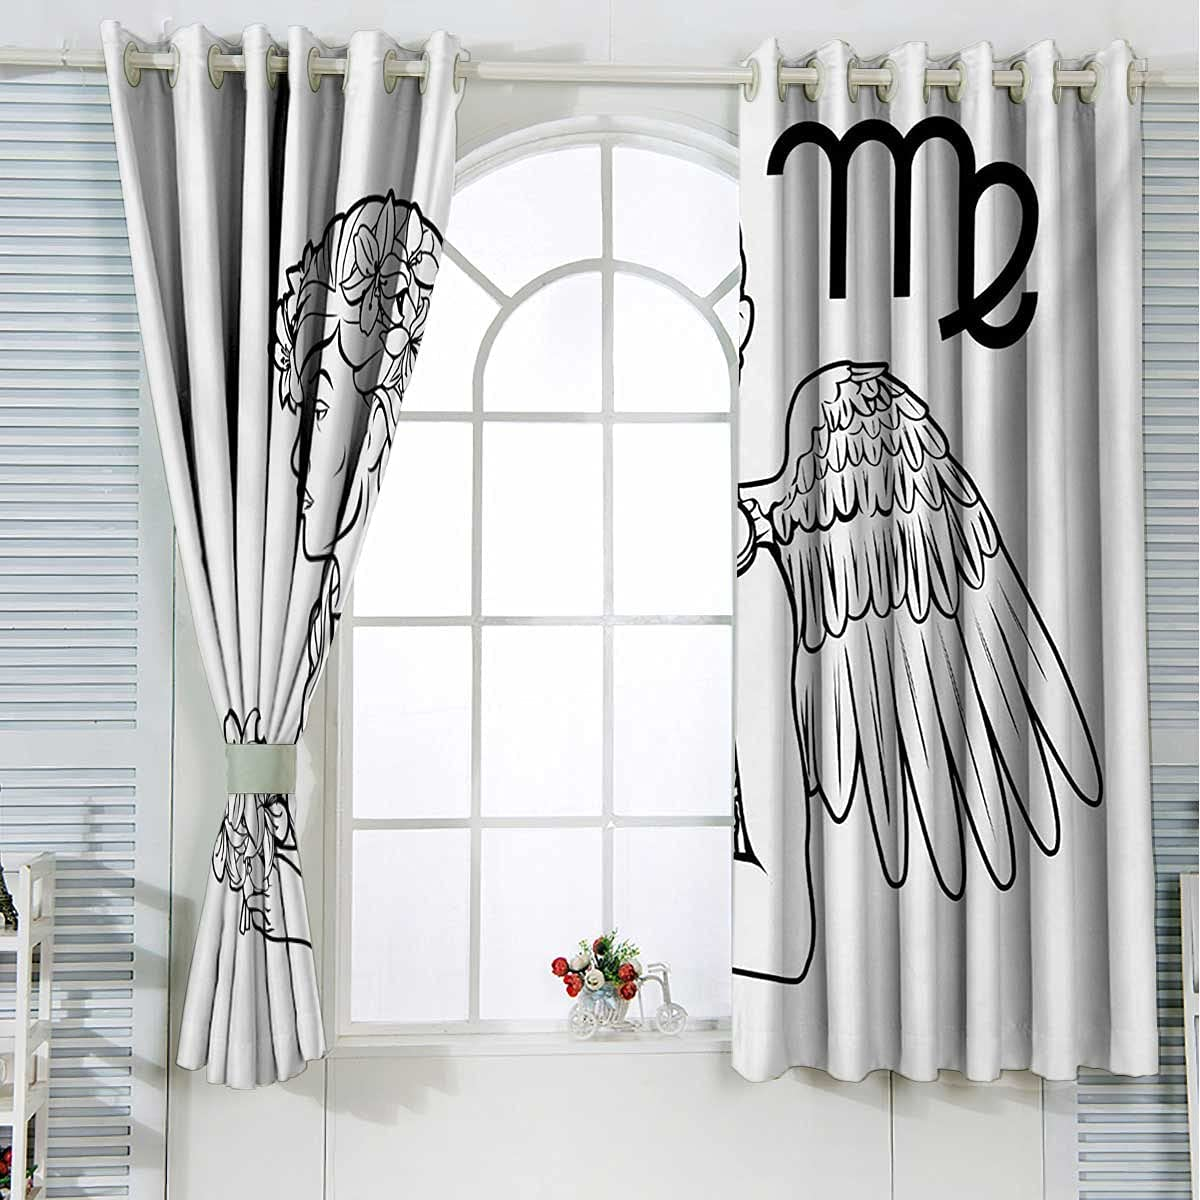 Zodiac Virgo Max 54% OFF Farmhouse Max 55% OFF Curtains Black Blackout White and Thermal